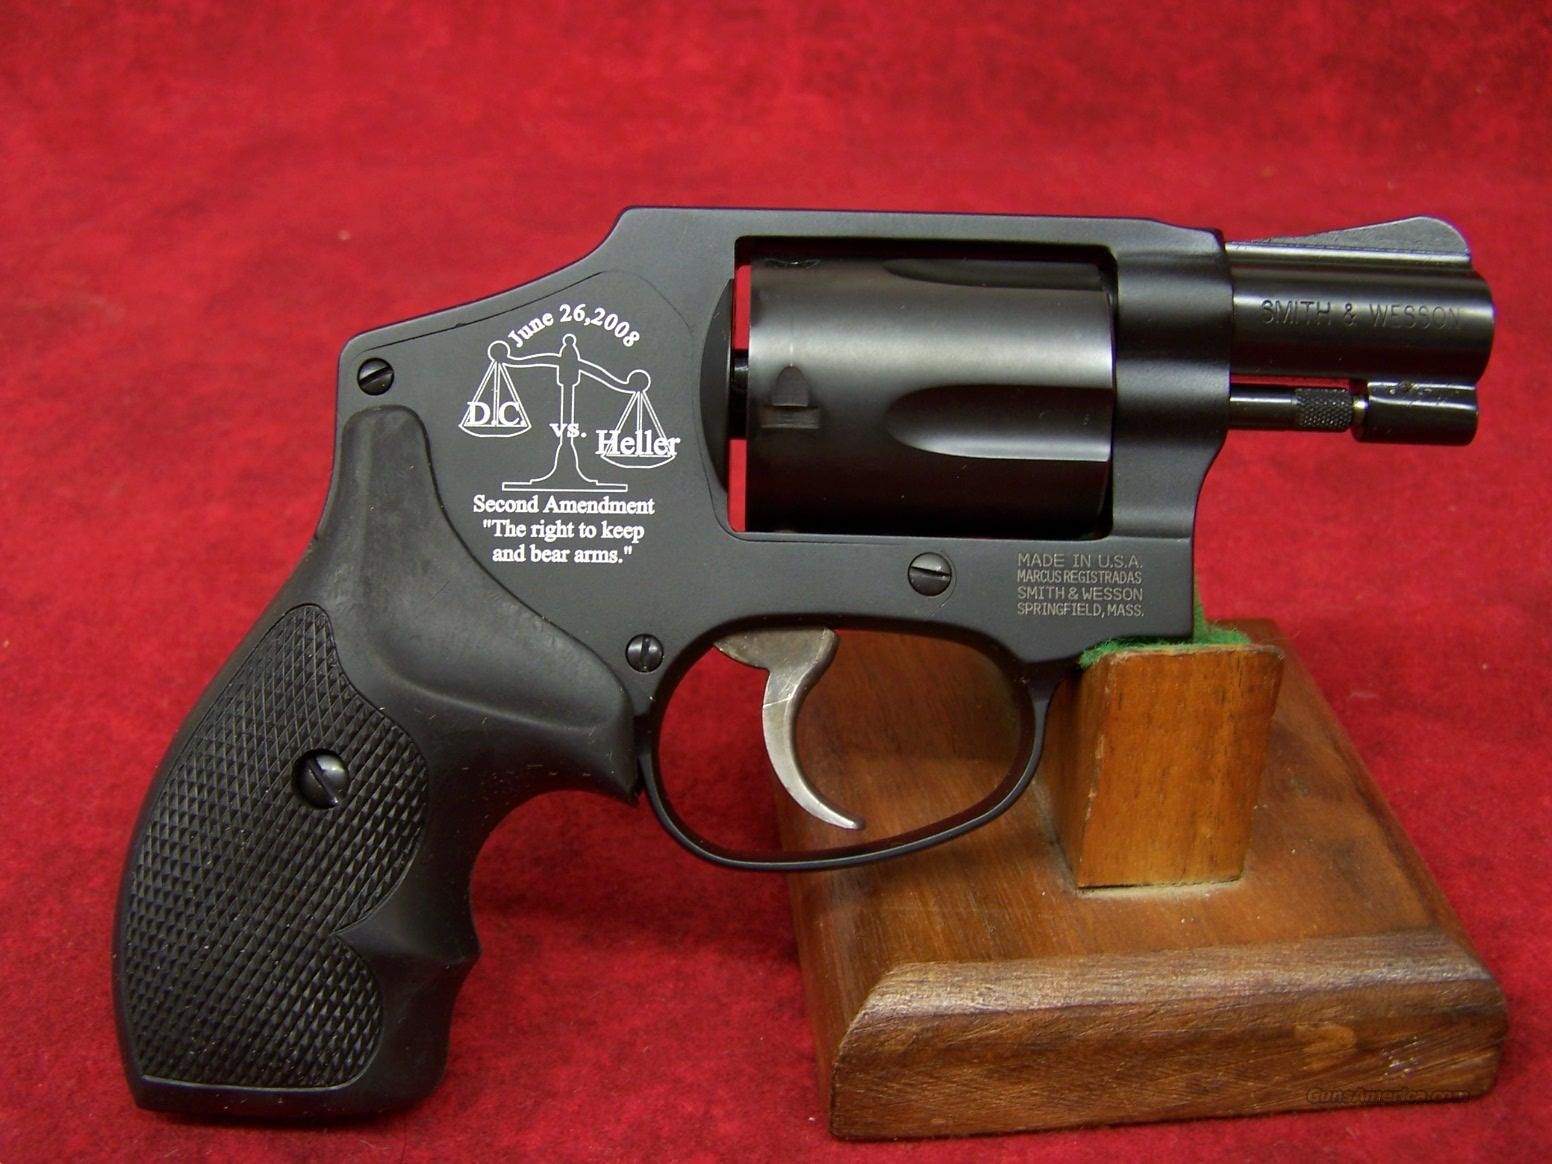 Smith & Wesson 442 D C  vs Heller  38 Special